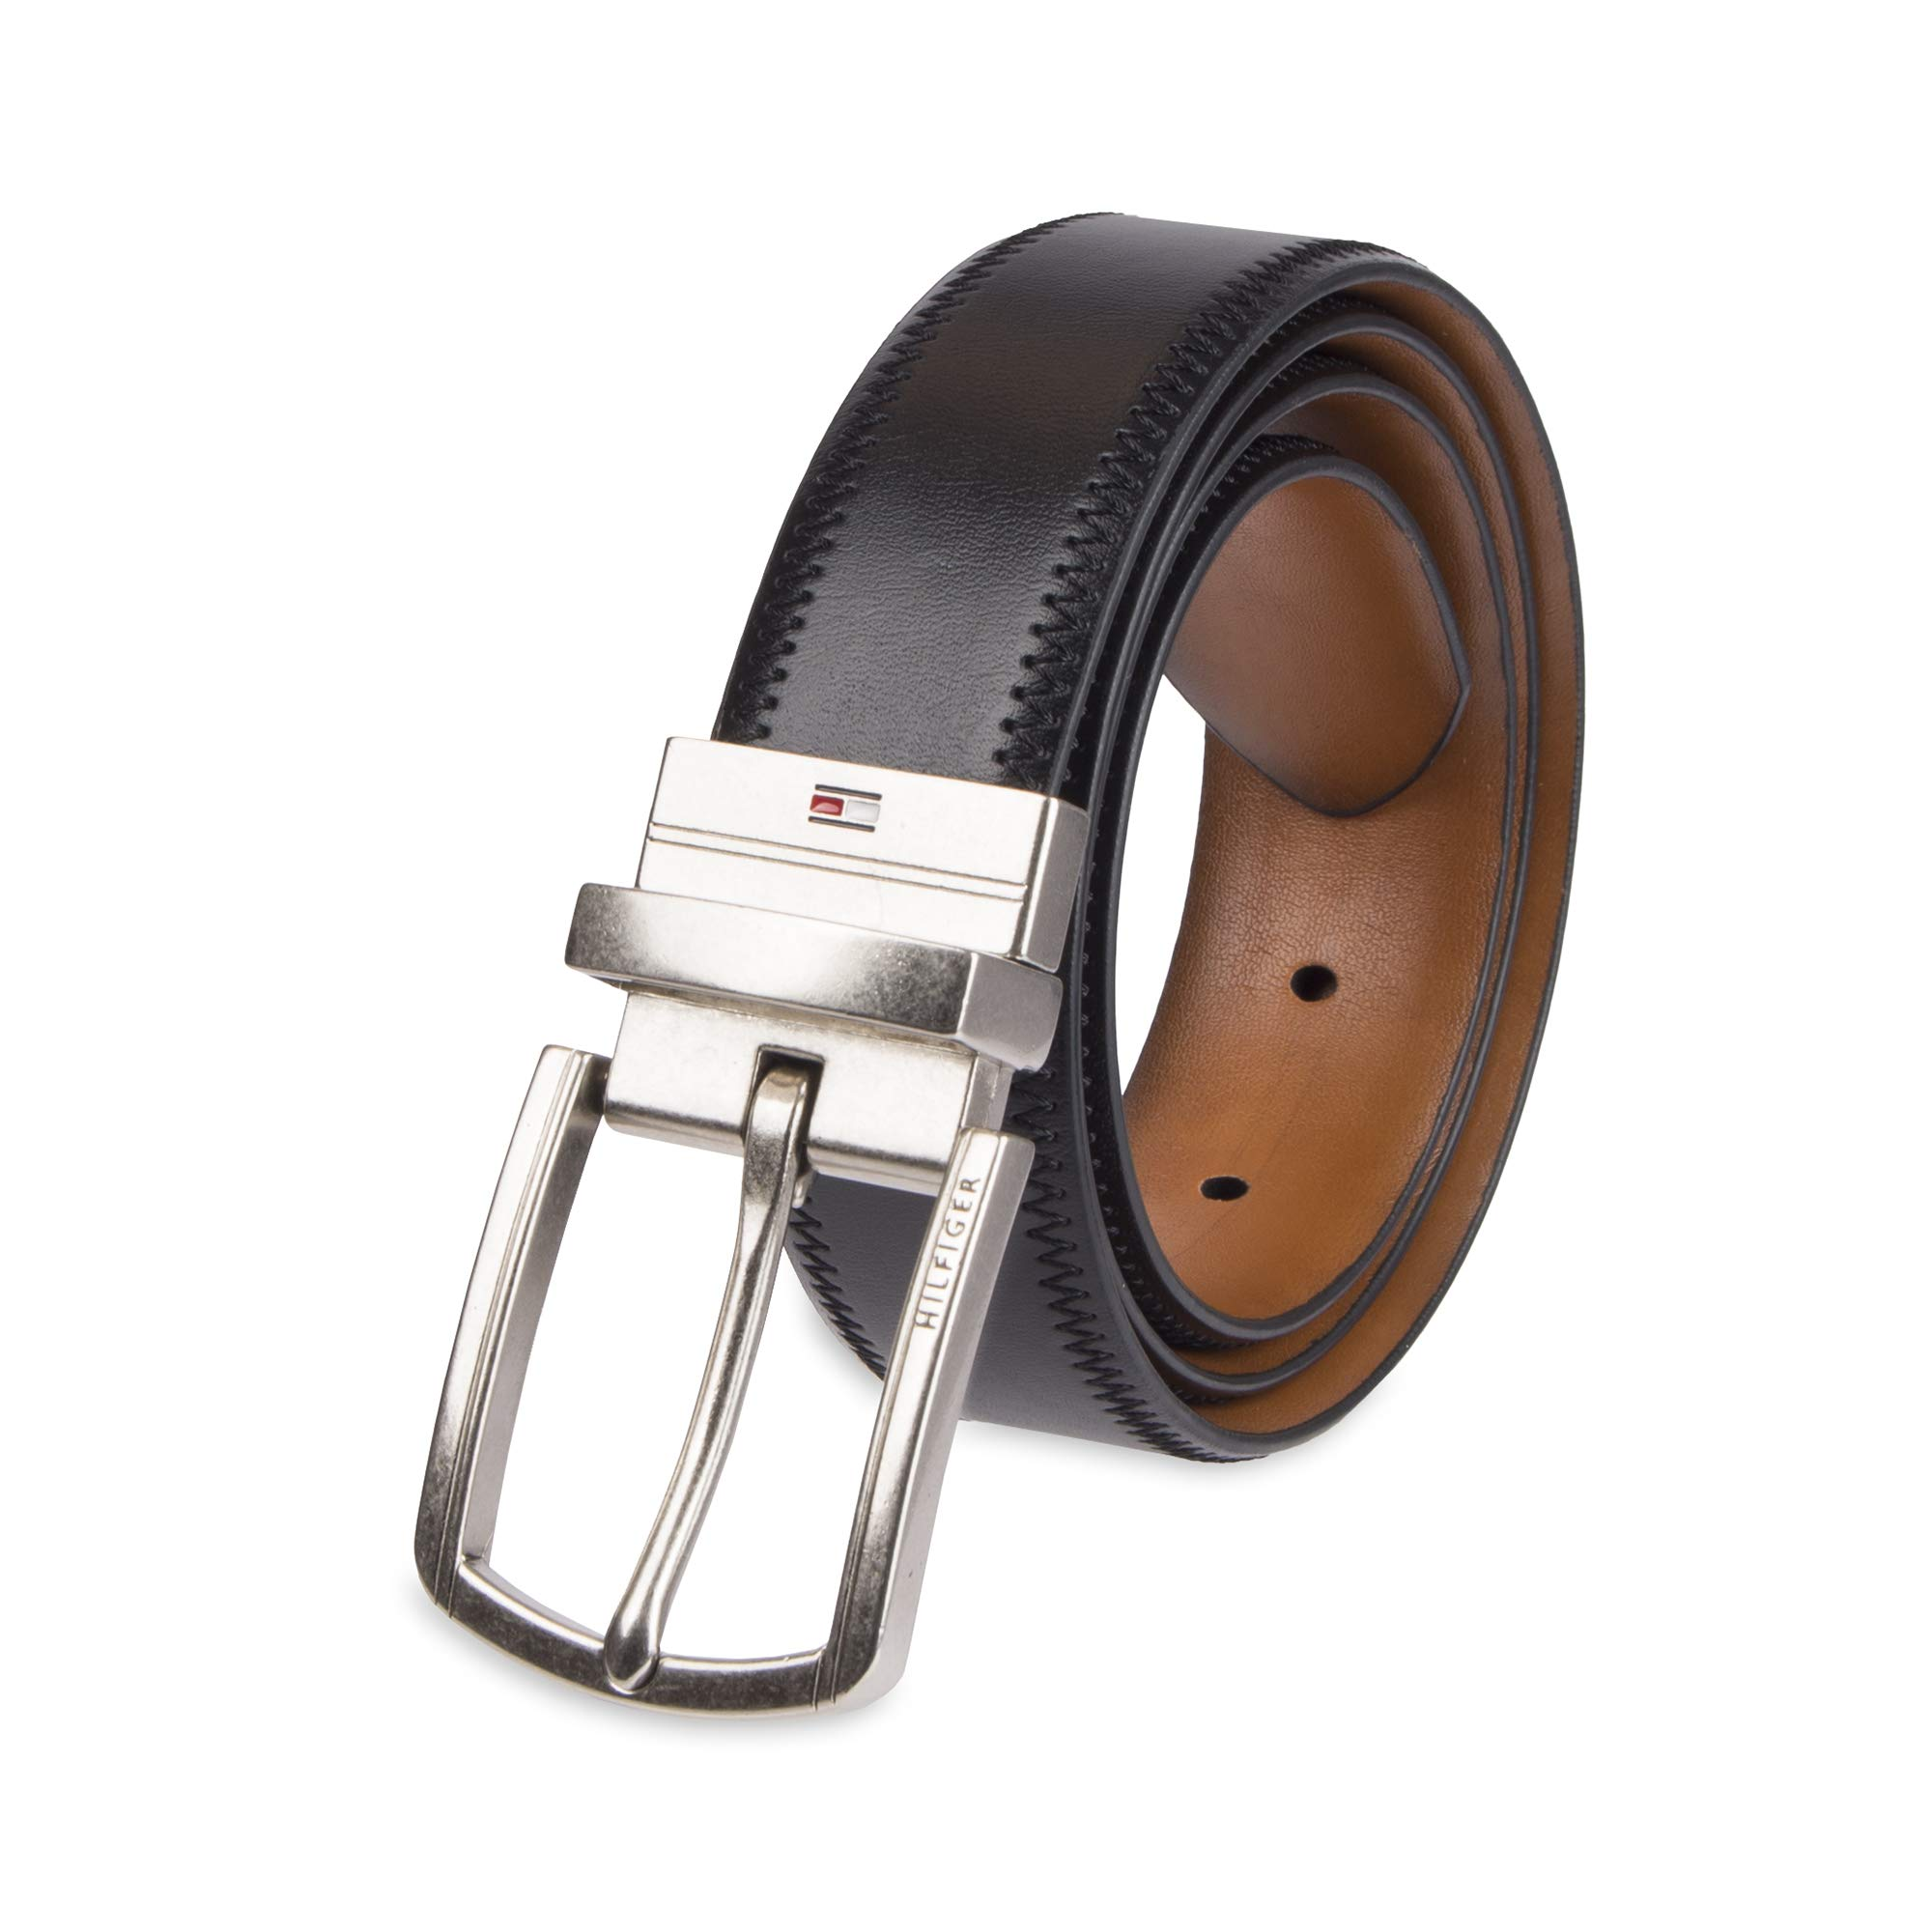 Tommy Hilfiger Reversible Leather Belt - Casual for Mens Jeans with Double Sided Strap and Silver Buckle, Black/Tan, 30